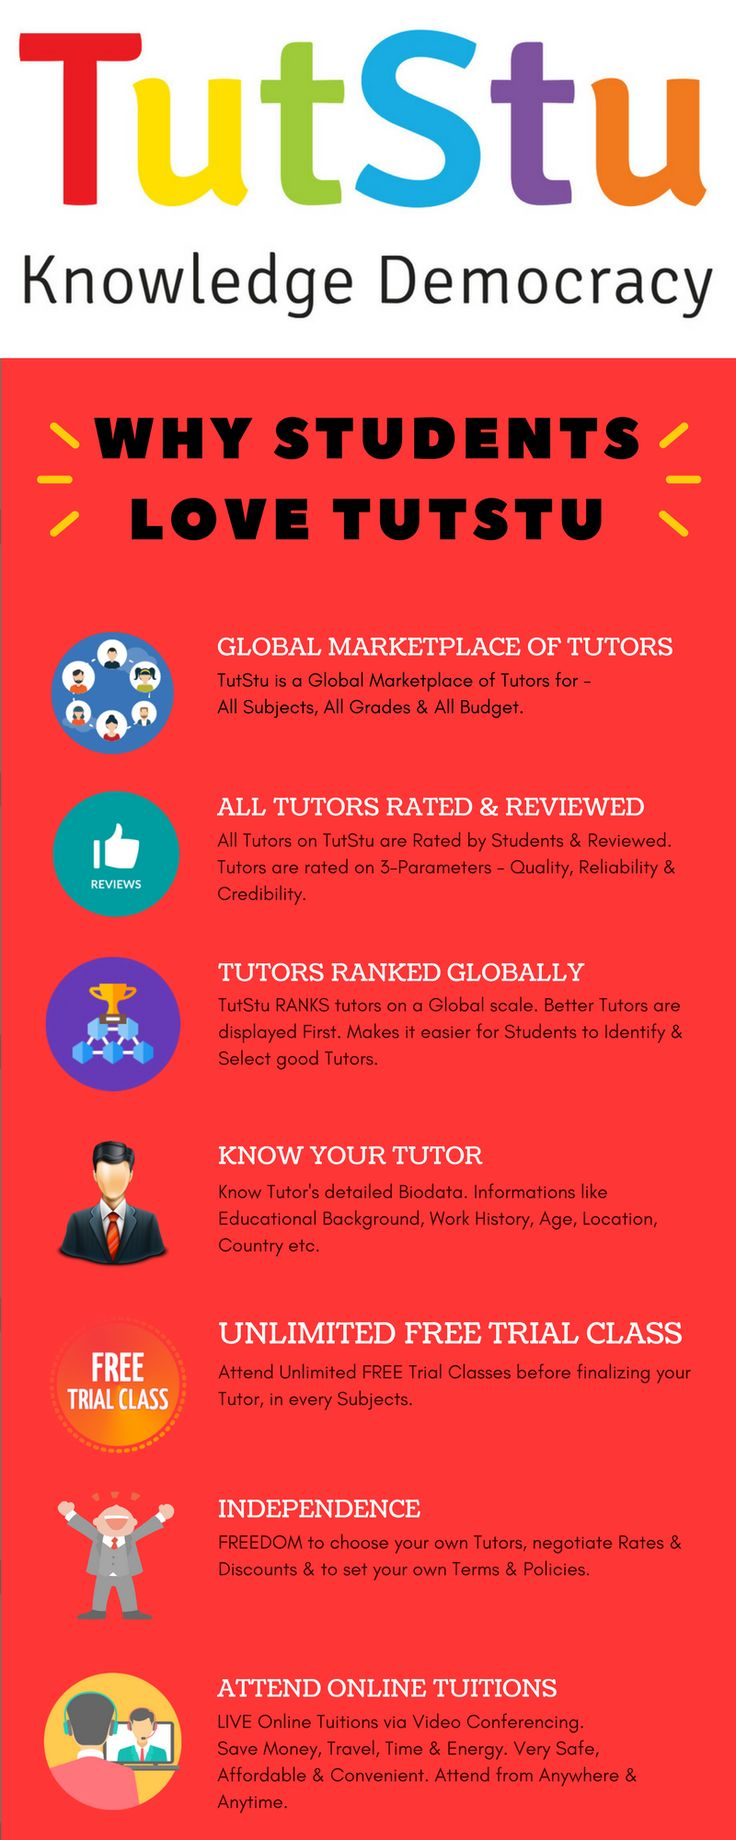 At TutStu, it's DIY (Do-It-Yourself). Search for Online Tutors in any Subject or Branch. Find & Select your own Teacher.Get Unlimited FREE Online Tutoring Sessions or Trial Classes. Finalize a Tutor. Fix regular eTutoring appointments with your Tutor.  Students can find tutors for CBSE Board, ICSE Board, IGCSE Board, State Board, IITJEE Preparation, JEE, NEET Preparation, SAT Preparation, ACT Preparation, AP Preparation, KS 1-4, A-Level, B-Level, NAPLAN Preparation, ACER preparation etc.